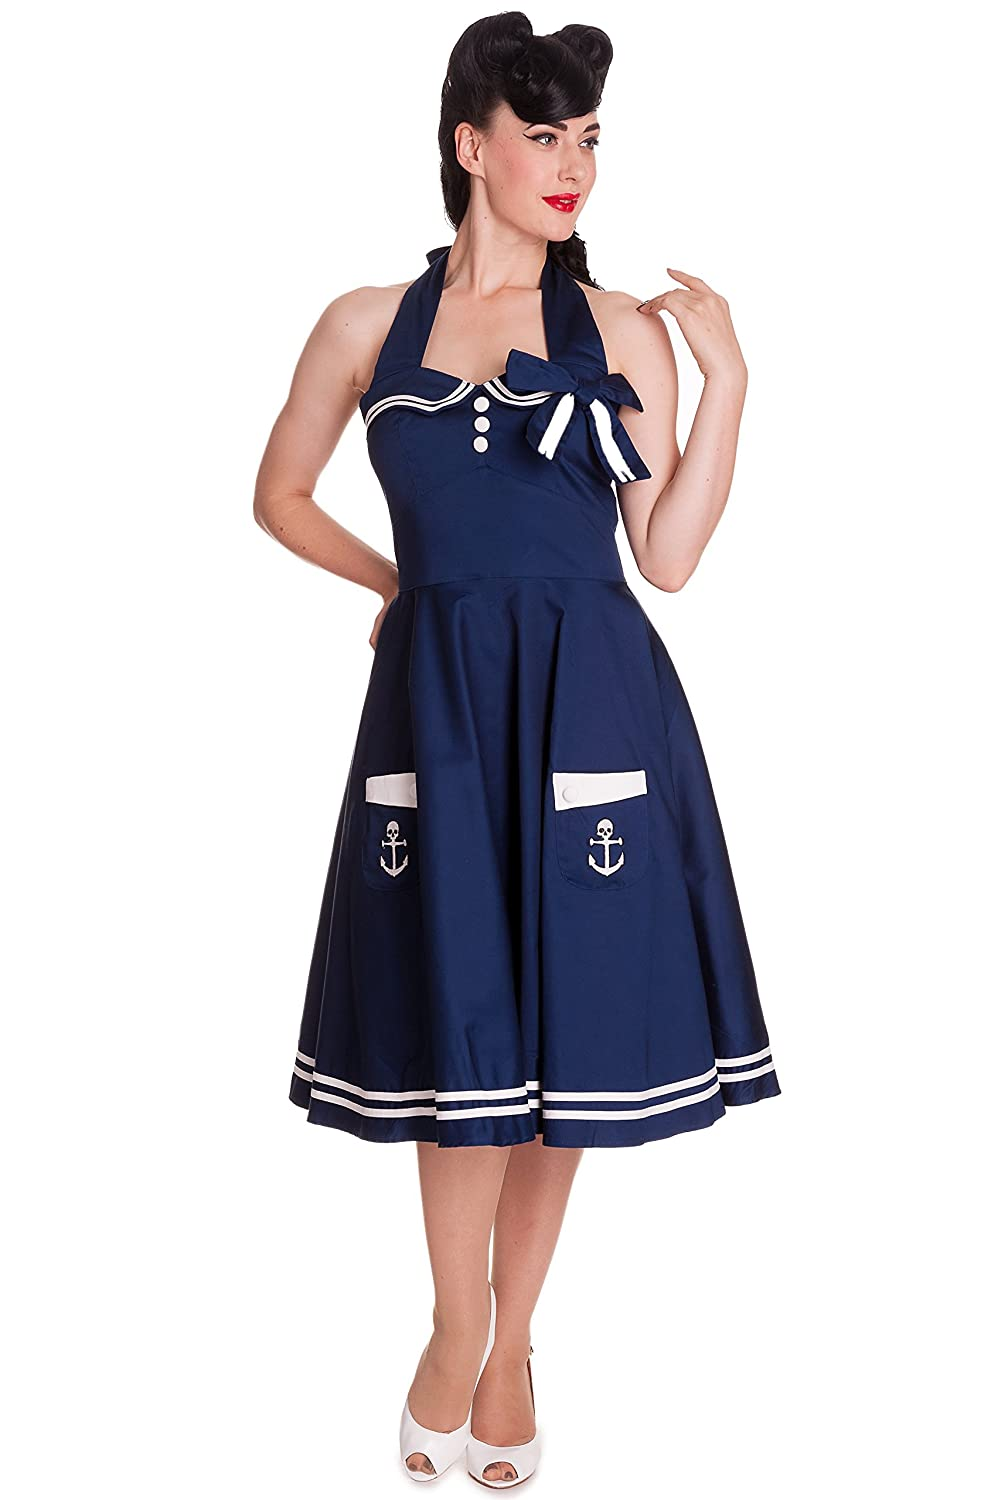 1940s Style Dresses | 40s Dress, Swing Dress Hell Bunny 50s Motley Pinup Sailor Vintage Sailor Swing Dress $85.00 AT vintagedancer.com